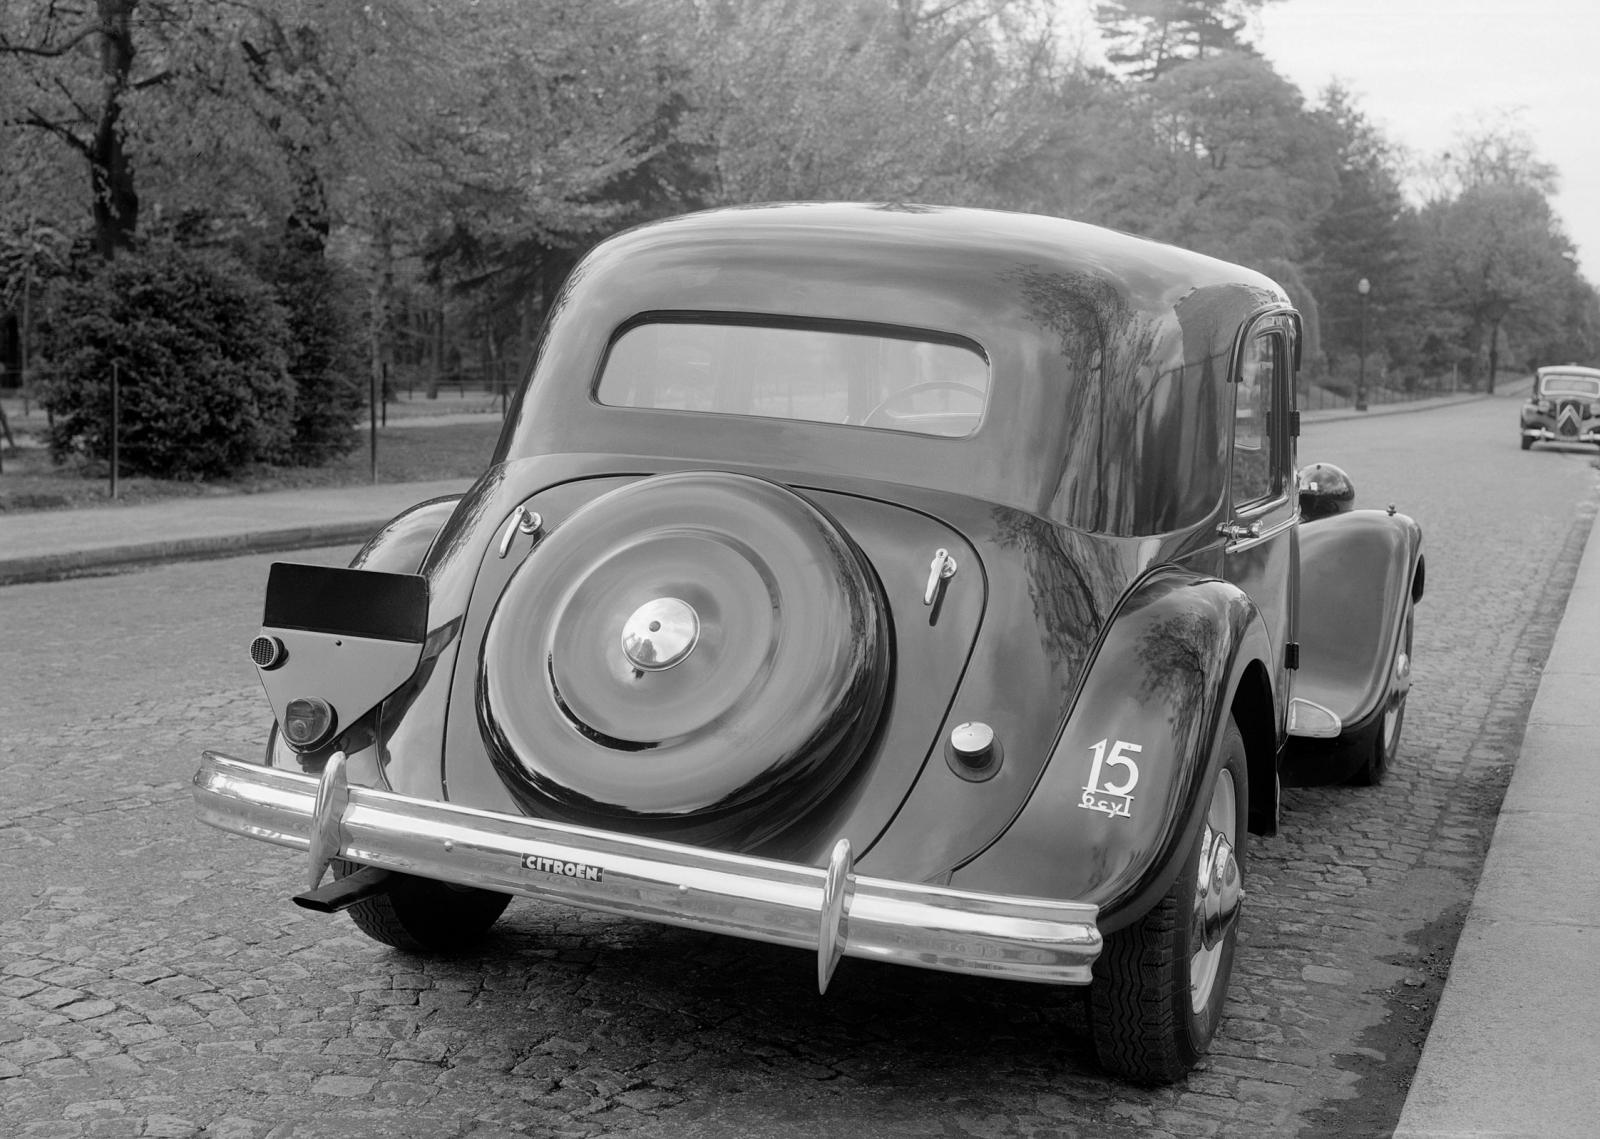 1939. g. Traction 15 SIX G